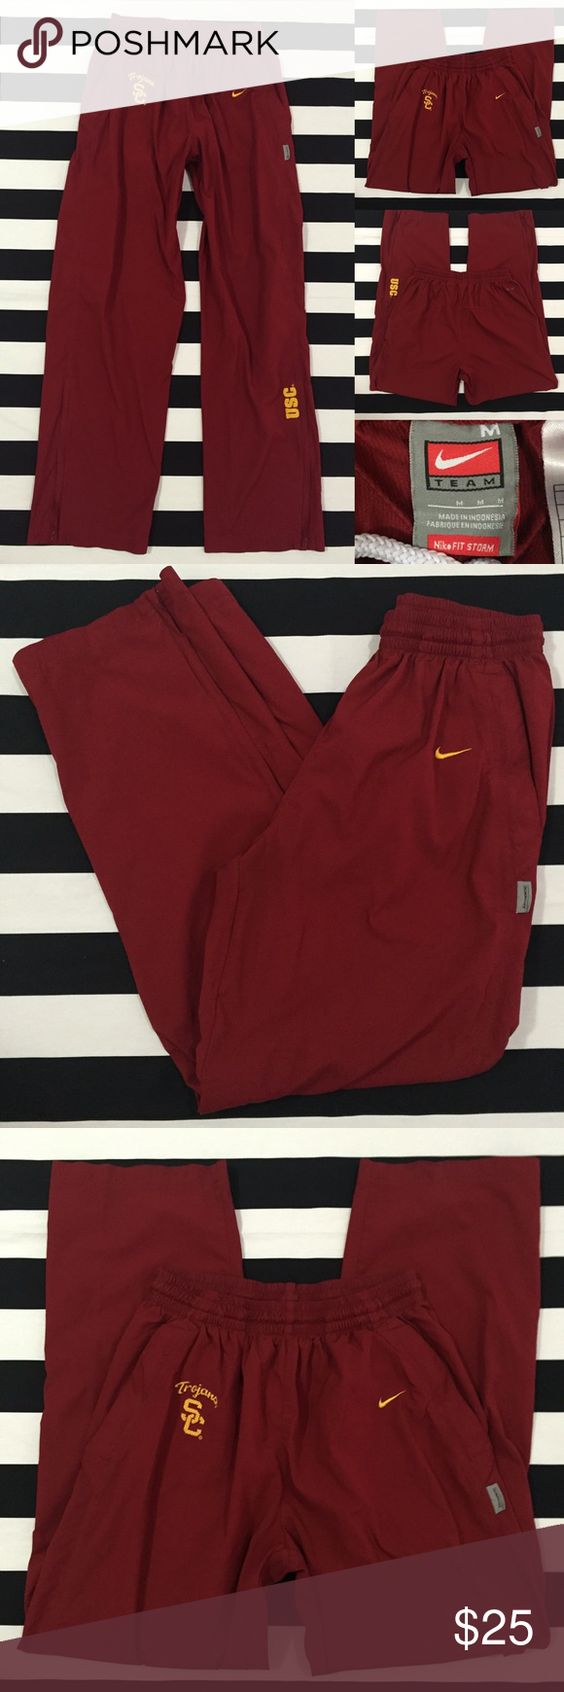 "[Nike] ""USC"" athletic pants szM [Nike] ""USC"" athletic pants szM •listing •good used condition •University of Southern California Trojans •size medium (these seem to be unisex, slightly baggy style, waistband can be folded over •pants are dark red/burgundy with yellow detail •length/inseam 30"" •2 front side zipper pockets •zippers at bottom of pant legs •elastic drawstring waistband •See other Nike and athletic listings in my closet Nike Pants Track Pants & Joggers"